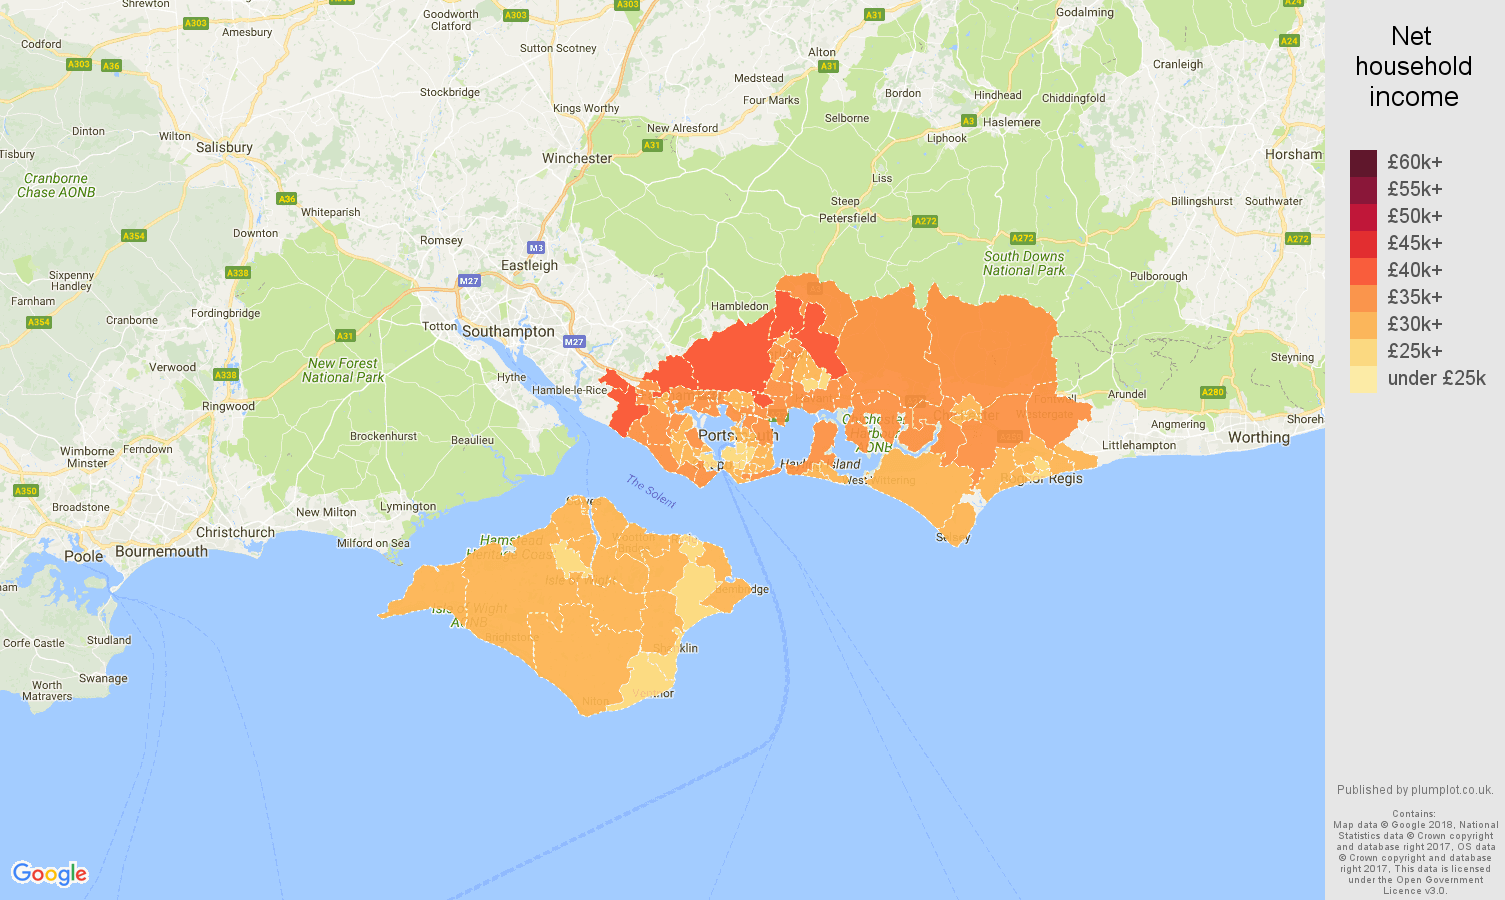 Portsmouth net household income map